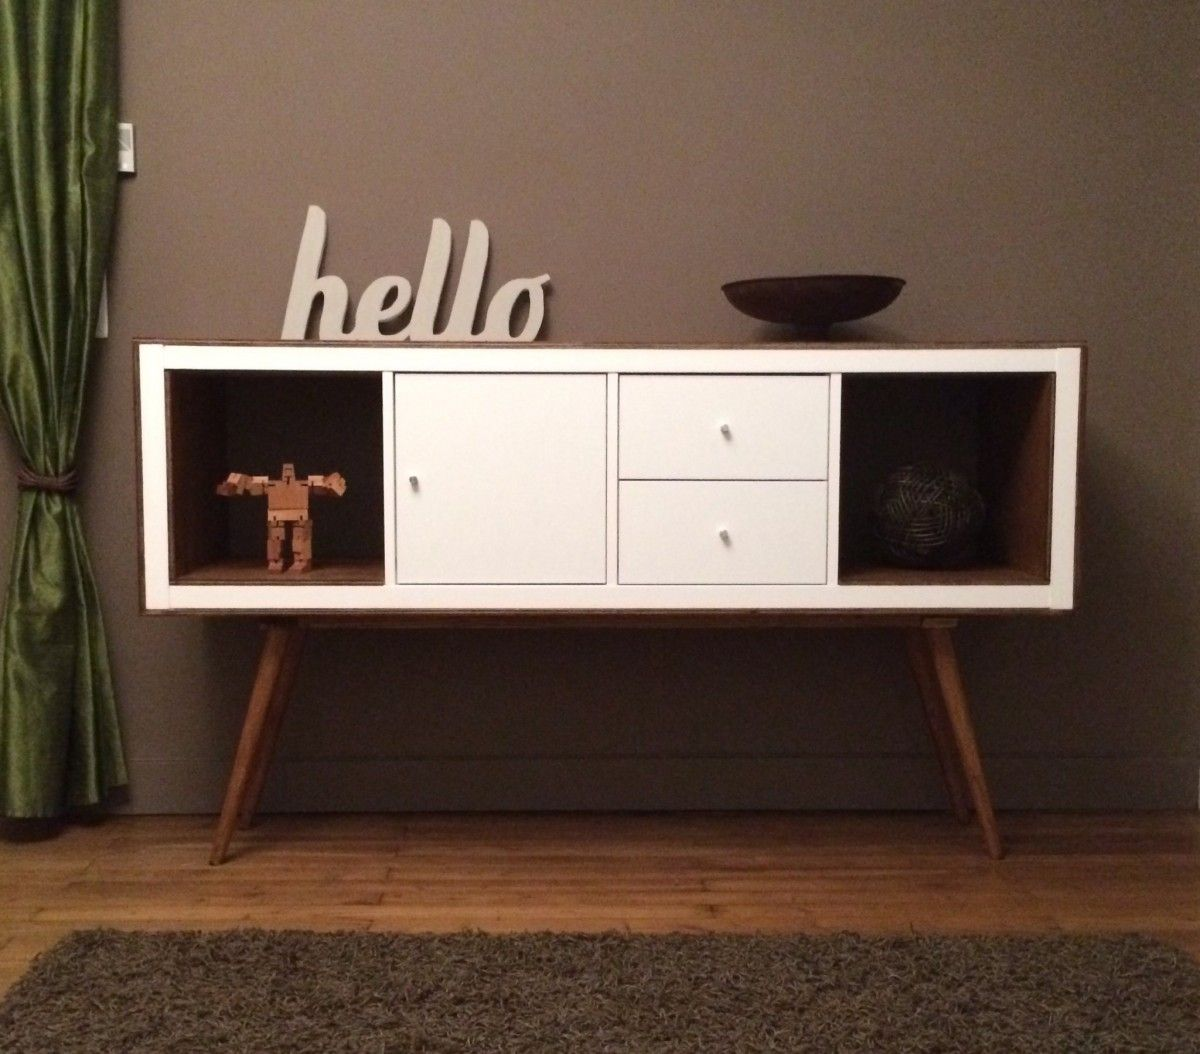 Un meuble styl ann es 50 avec kallax ikea kallax shelf for Console meuble ikea